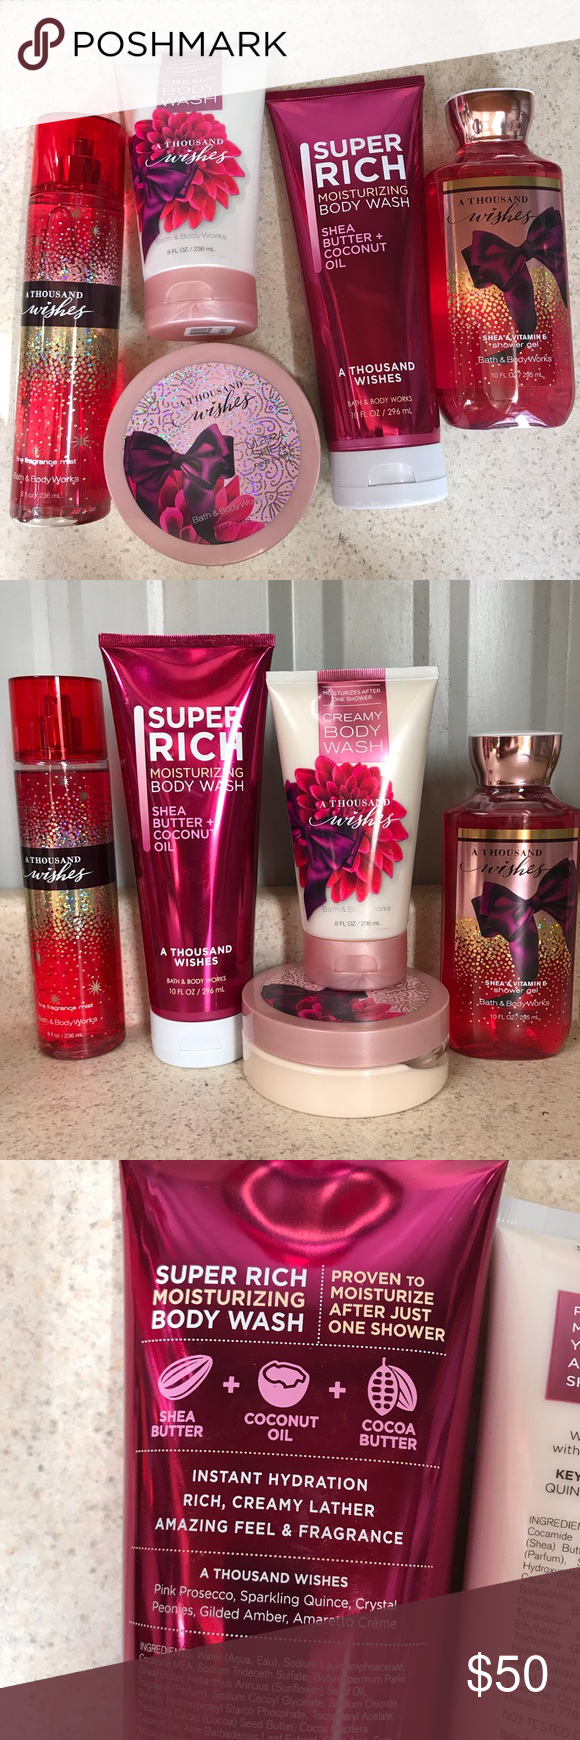 045d55a3e6506 A thousand wishes set of 5 items Brand new from bath and body works! 1000  wishes  Creamy body wash Fragrance mist Shower gel Body butter Moisturizing  body ...